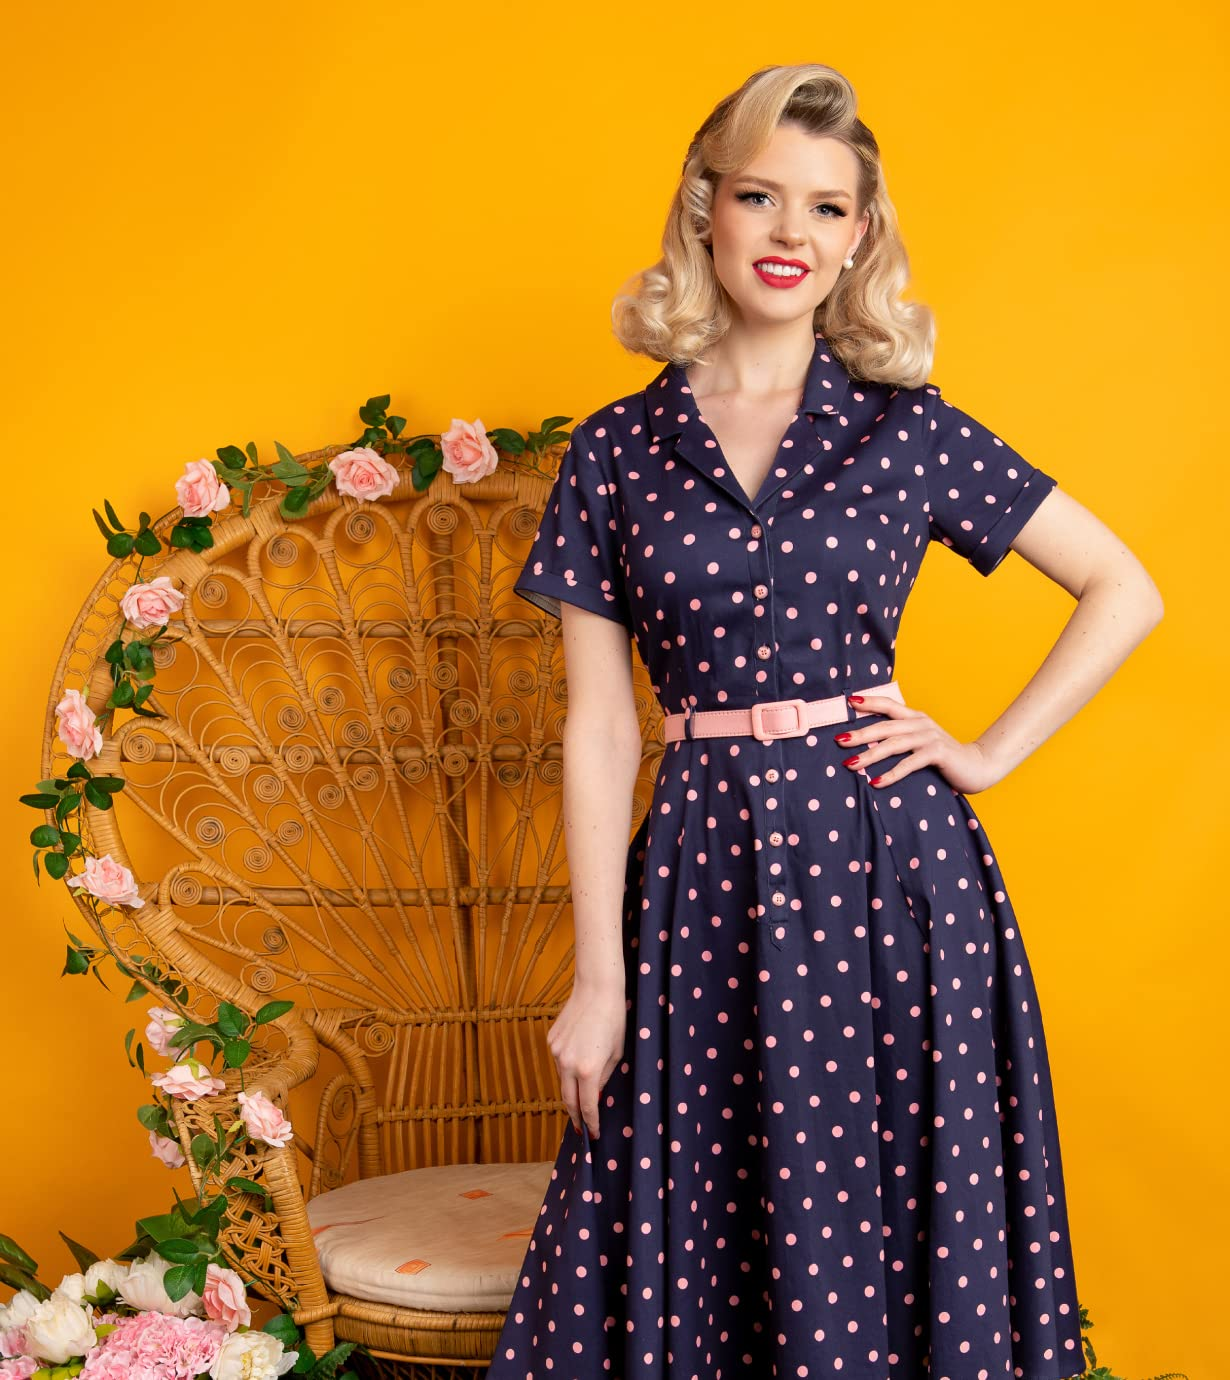 Collectif TopVintage 50s Caterina Pretty Polka Swing Dress in Navy and Pink